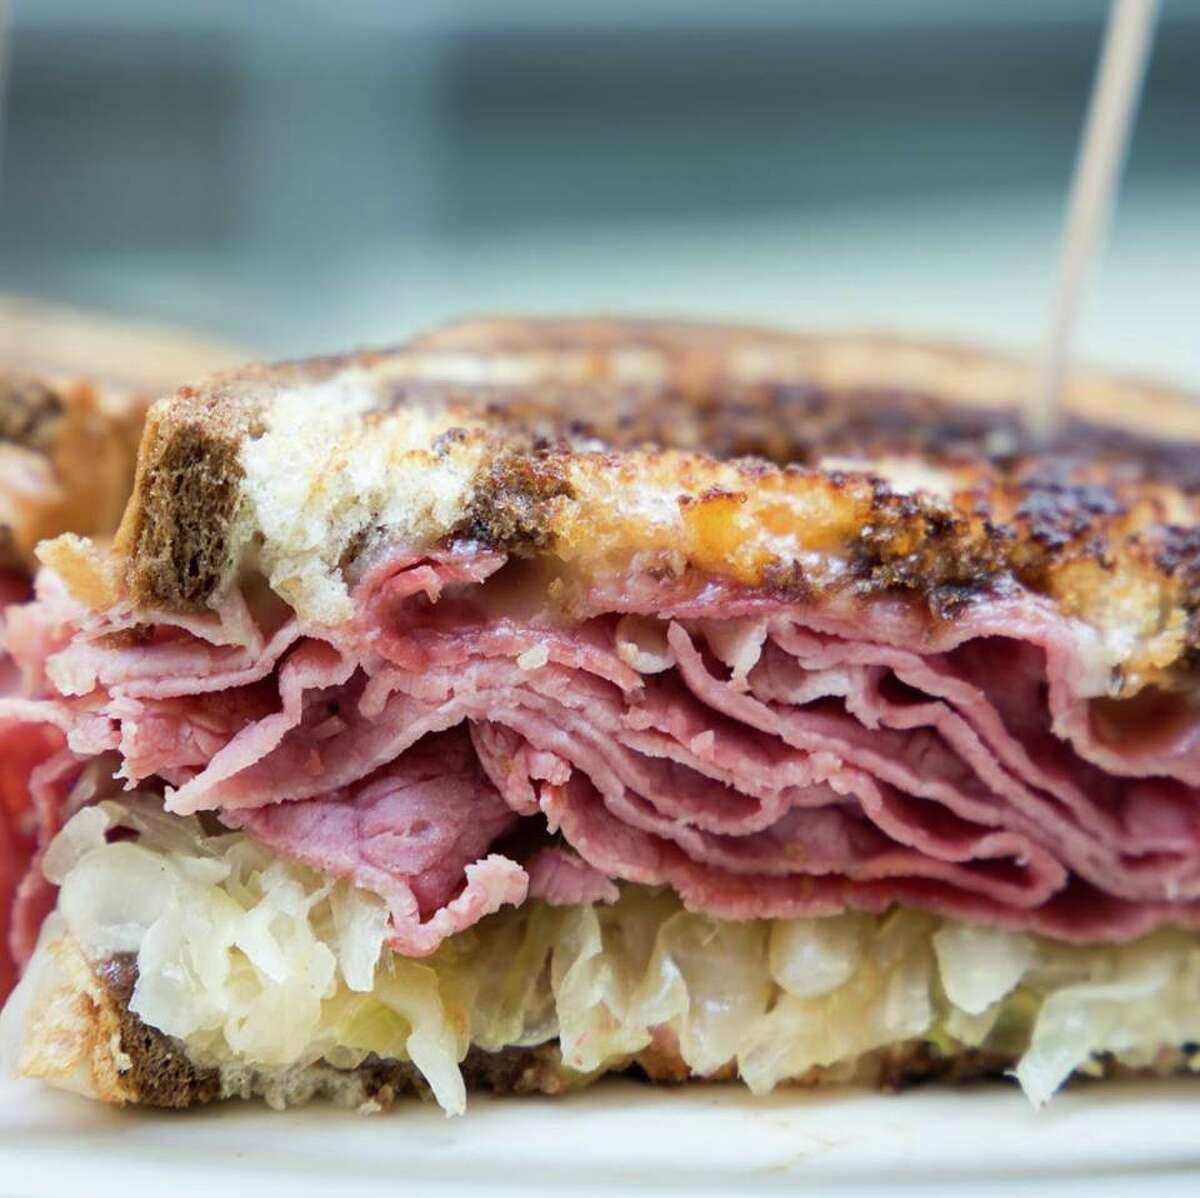 A Reuben with crunchy kraut and corned beef at Saratoga's Broadway Deli.